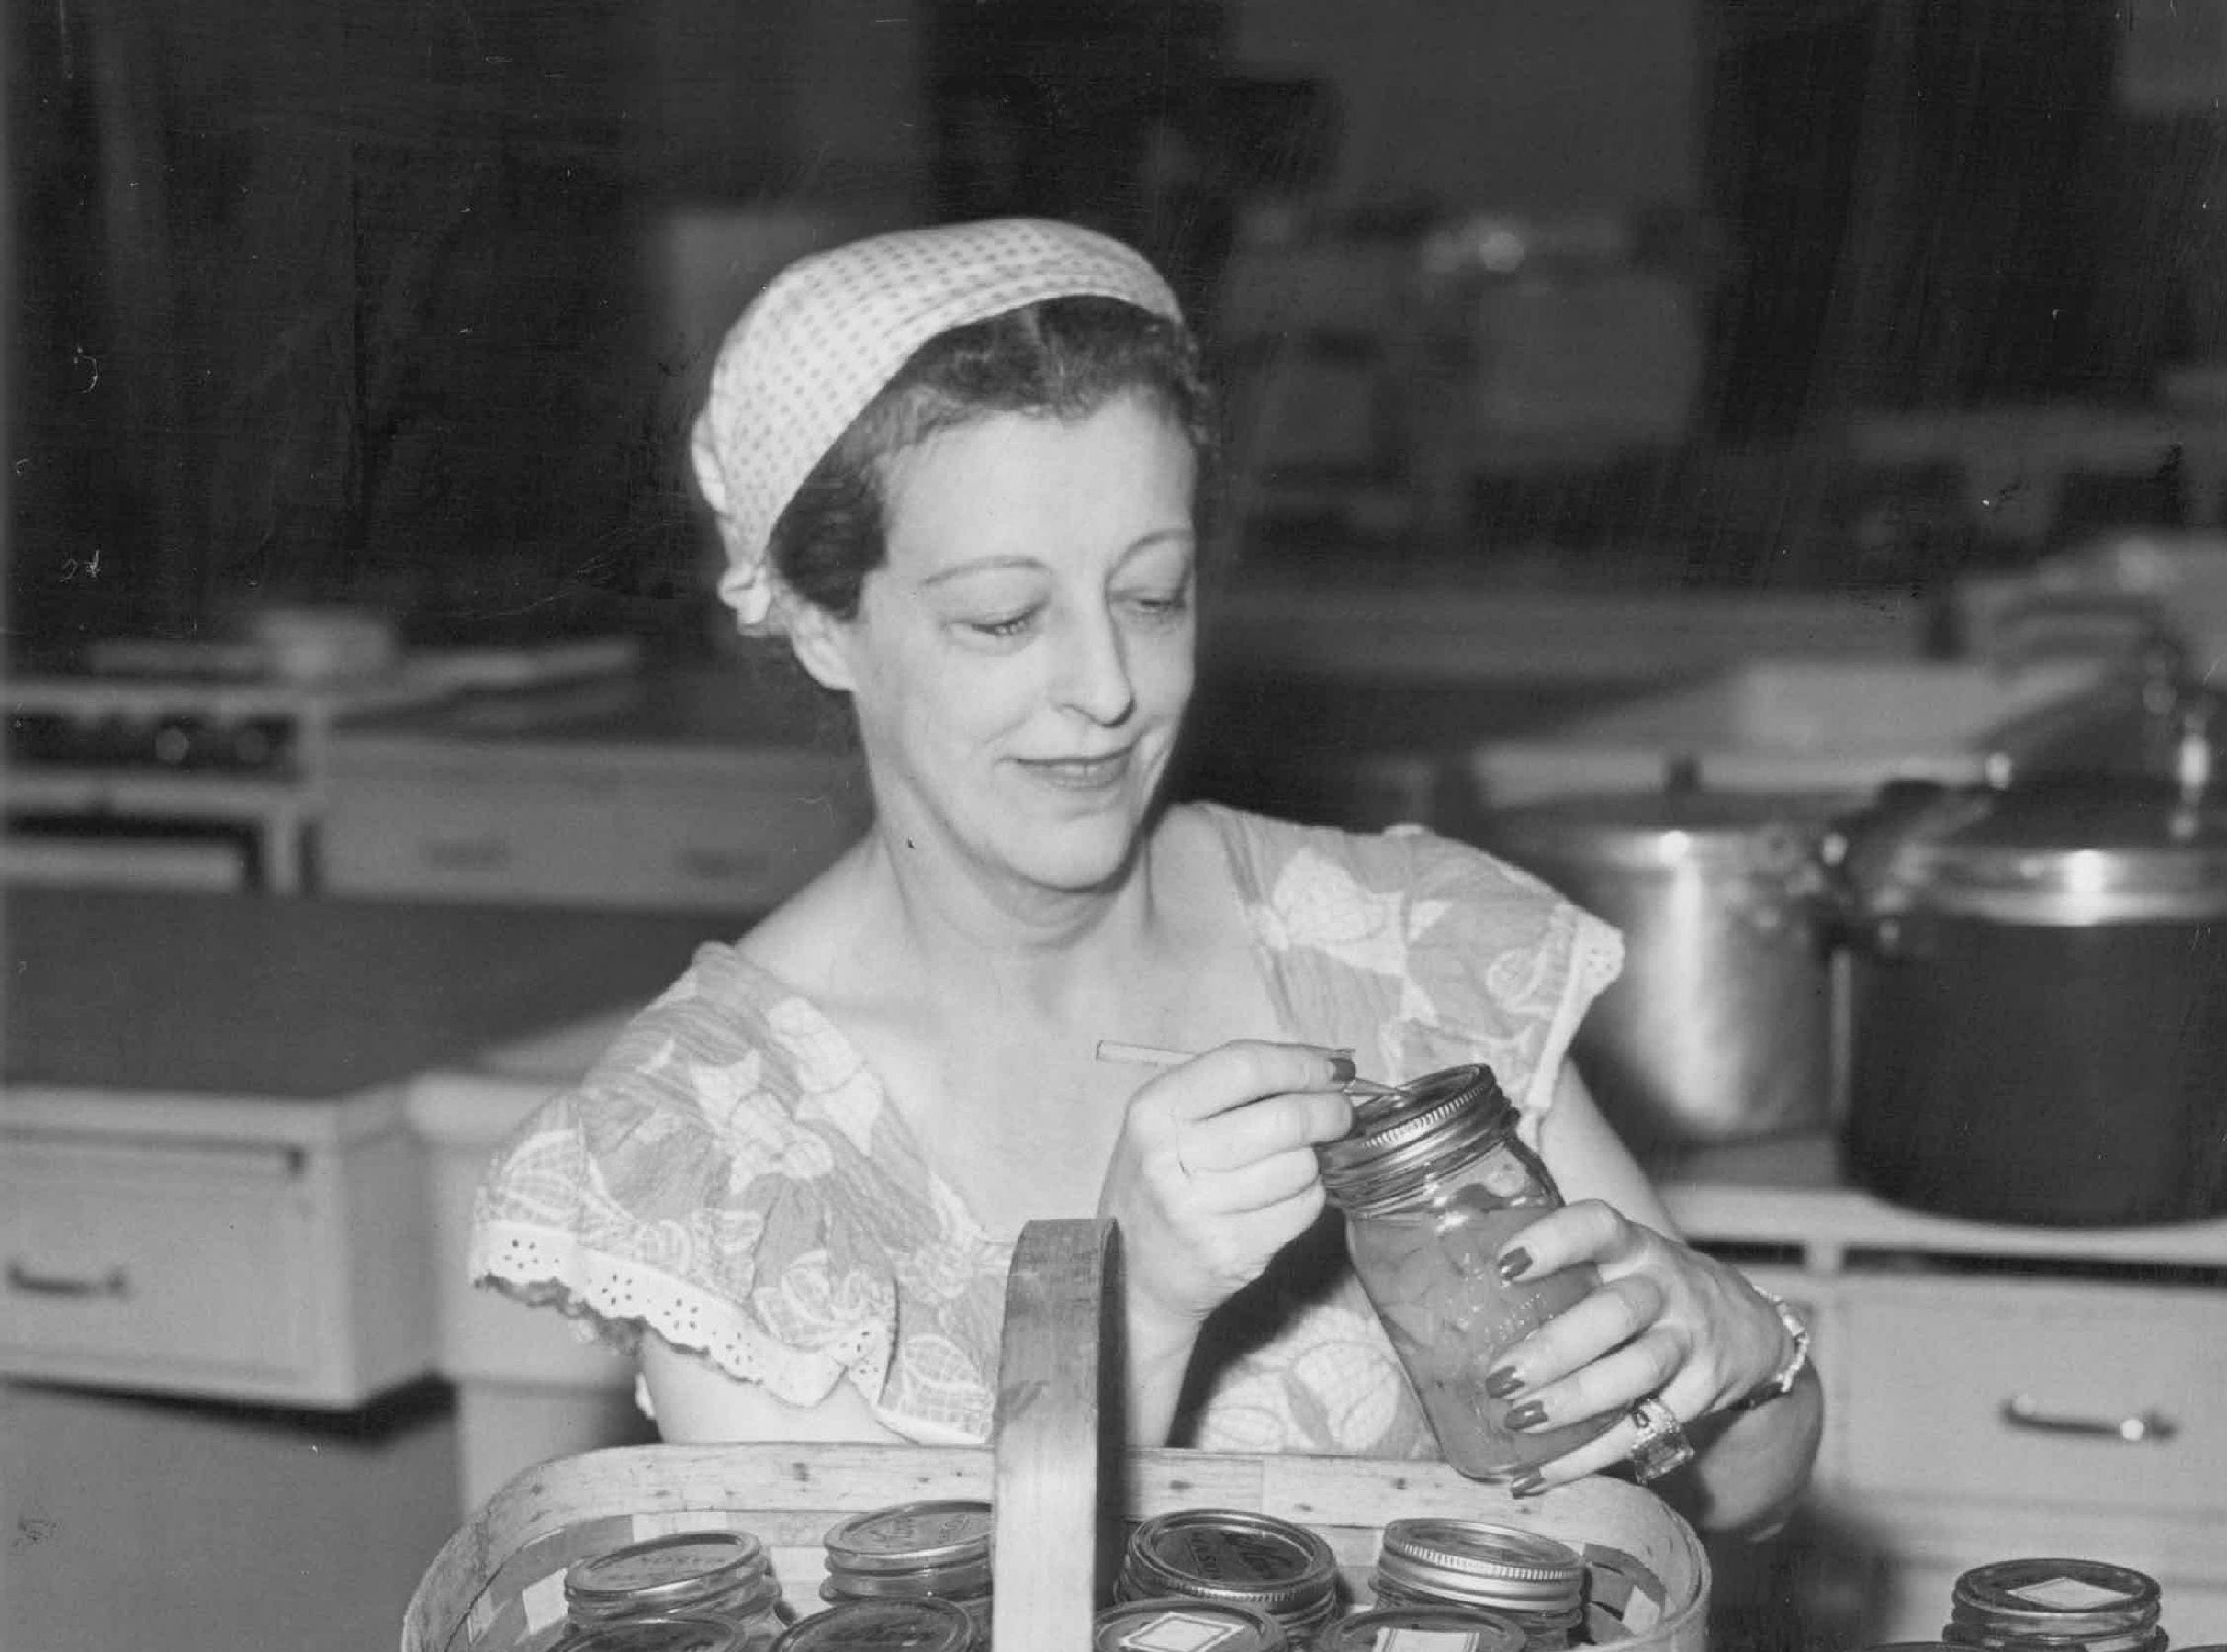 Countess Gwendolyn Currie Tolstoi, notable in Detroit society in 1944, marks some jars of canned food. Her husband, Count Cyril Tolstoi, was a cousin of Russian novelist Leo Tolstoy.